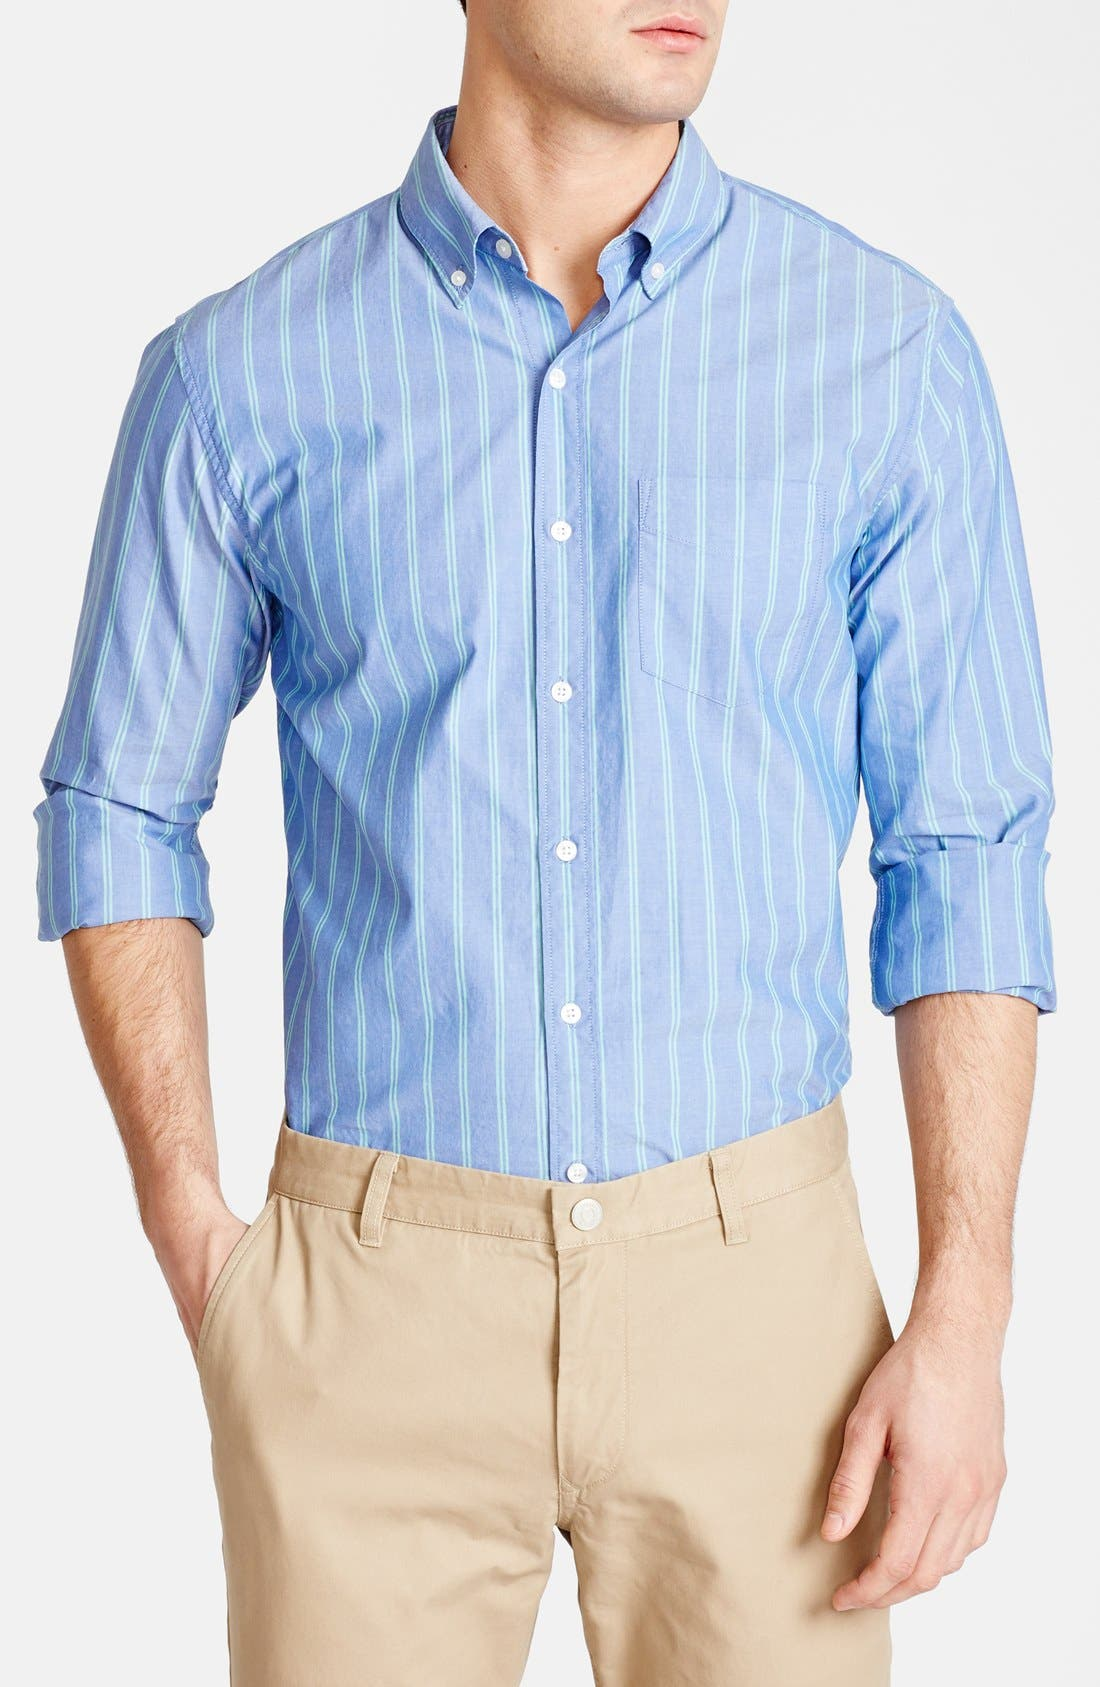 Alternate Image 1 Selected - Bonobos 'Glassop' Standard Fit Stripe Sport Shirt